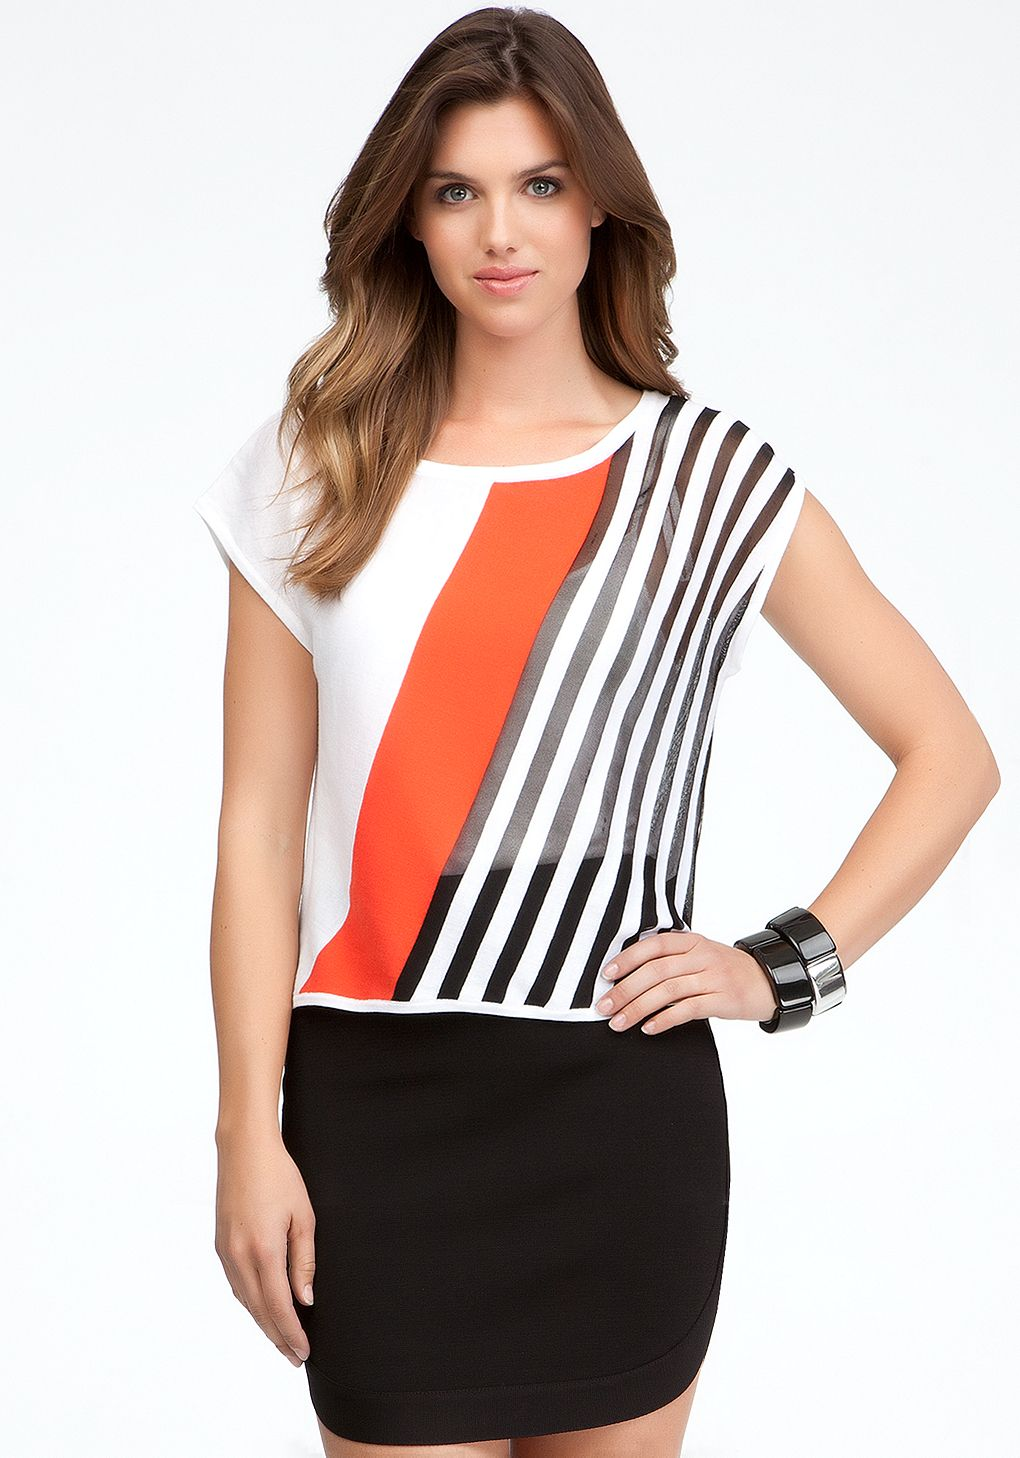 124a52b2d332 Diagonal strip colorblock top, drop shoulder, black is mesh see through,  but could just use regular stripe fabric.